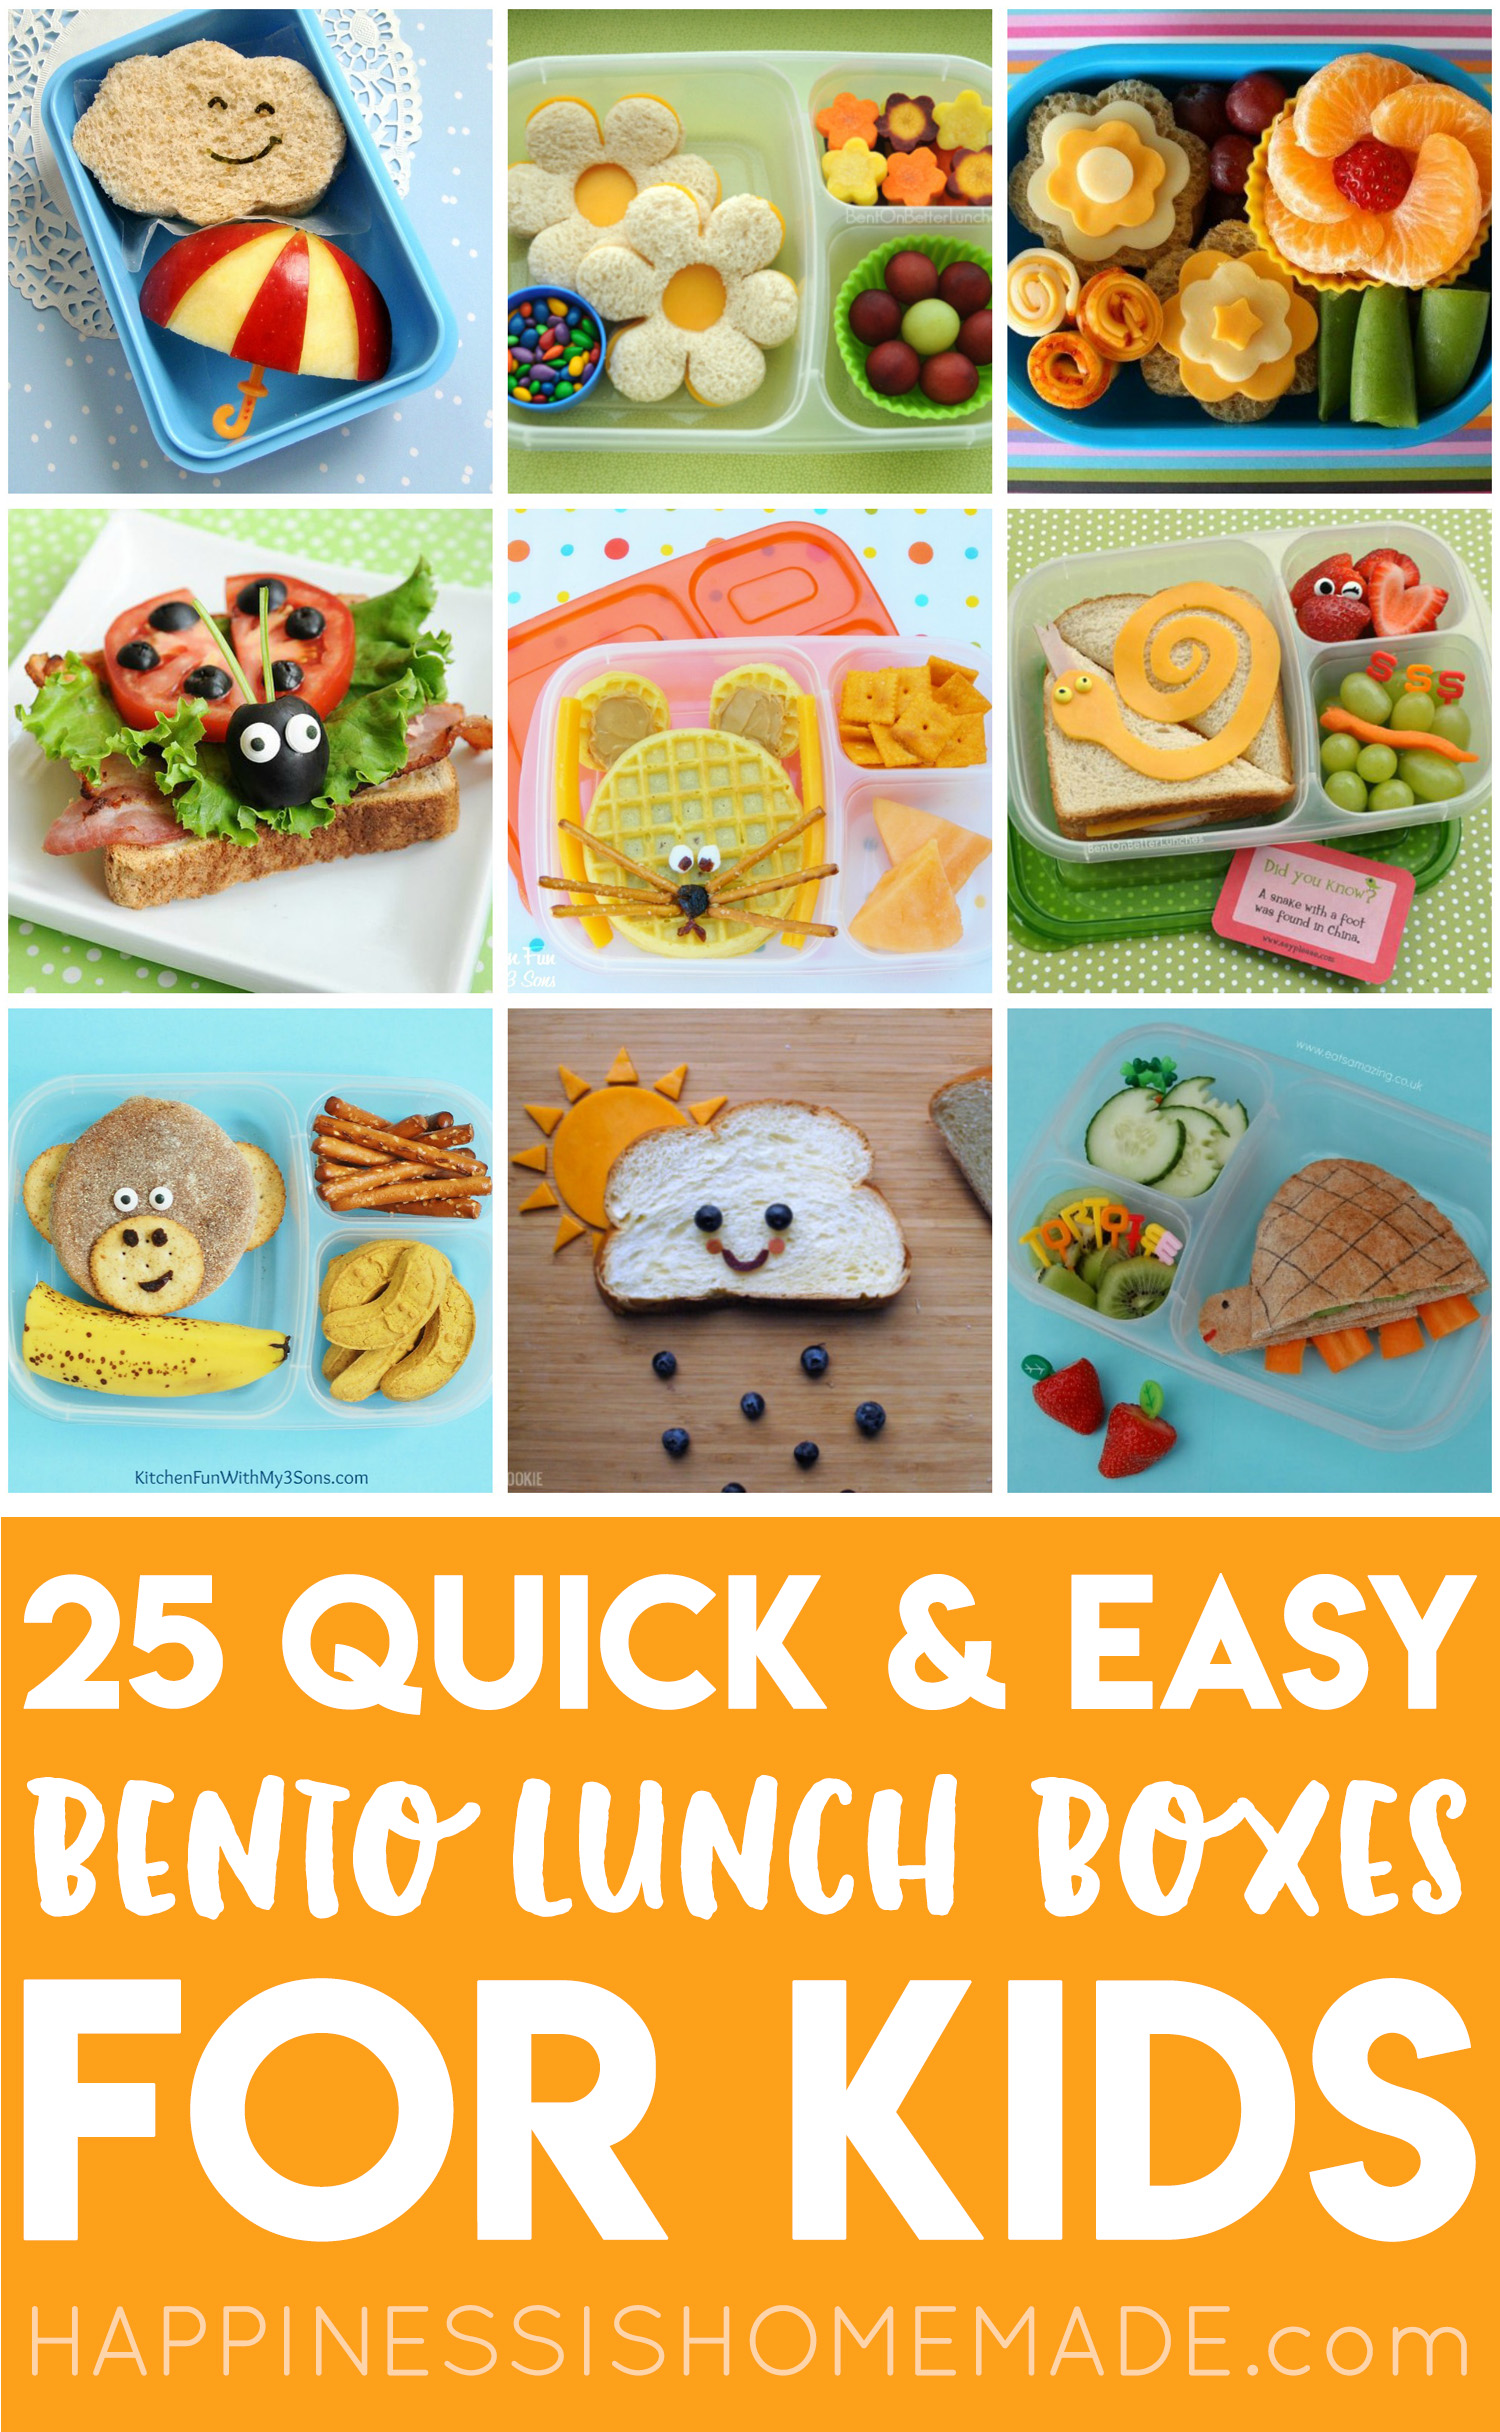 5a6f76ccbf01 25+ Easy Bento Lunch Boxes for Kids - Happiness is Homemade